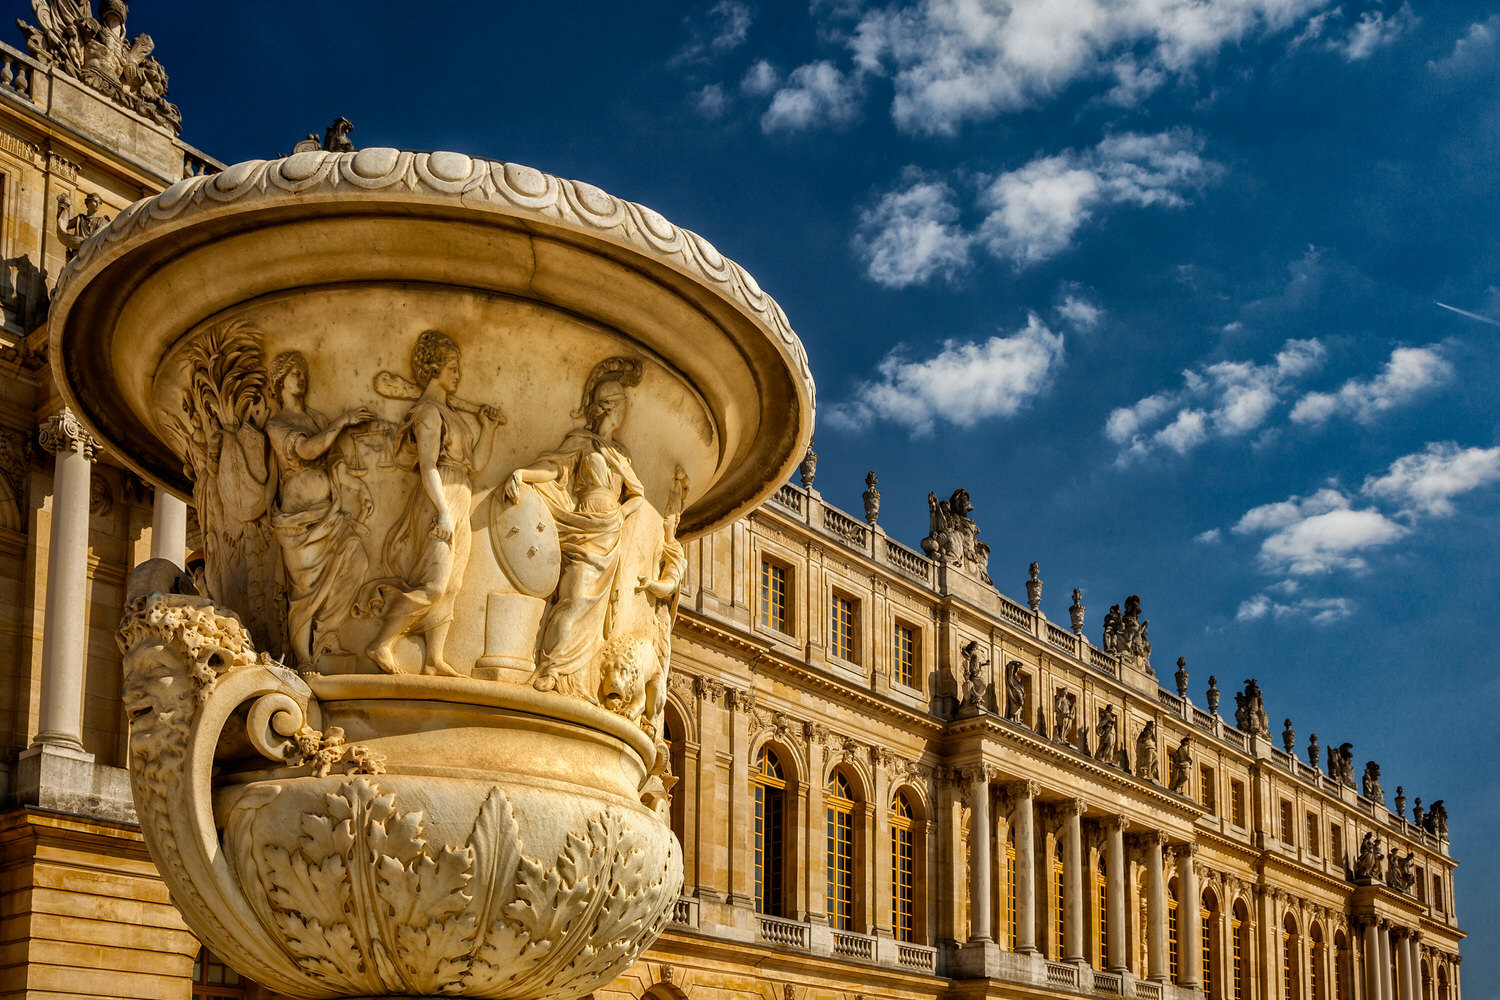 Wide angle lens changing perspective at the Palace of Versailles.